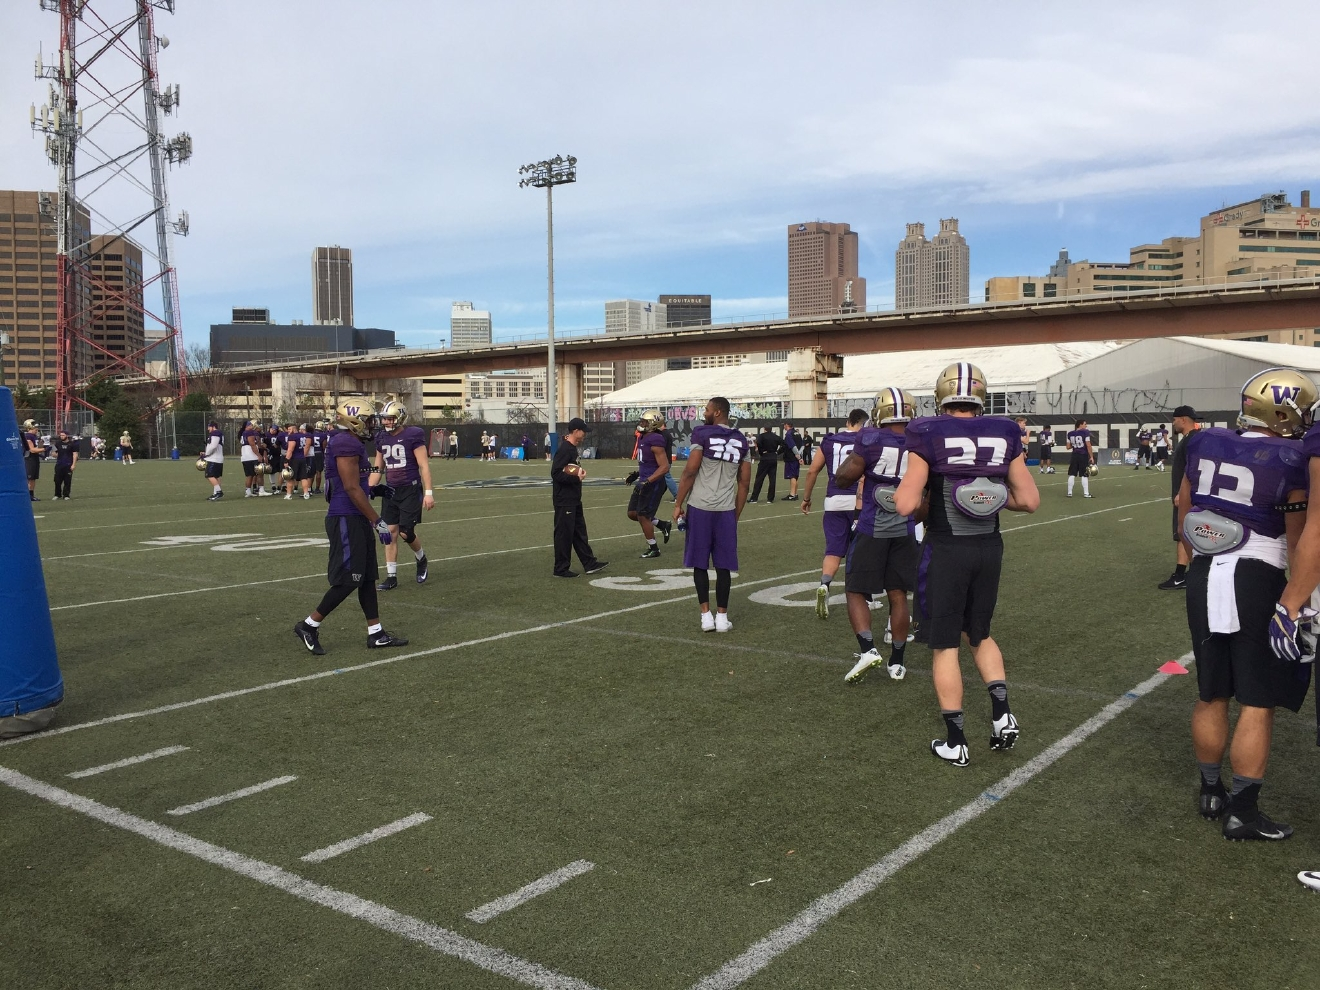 Huskies practice to face Alabama in the Peach Bowl in Atlanta, Dec. 28, 2016 (Photo: KOMO News)